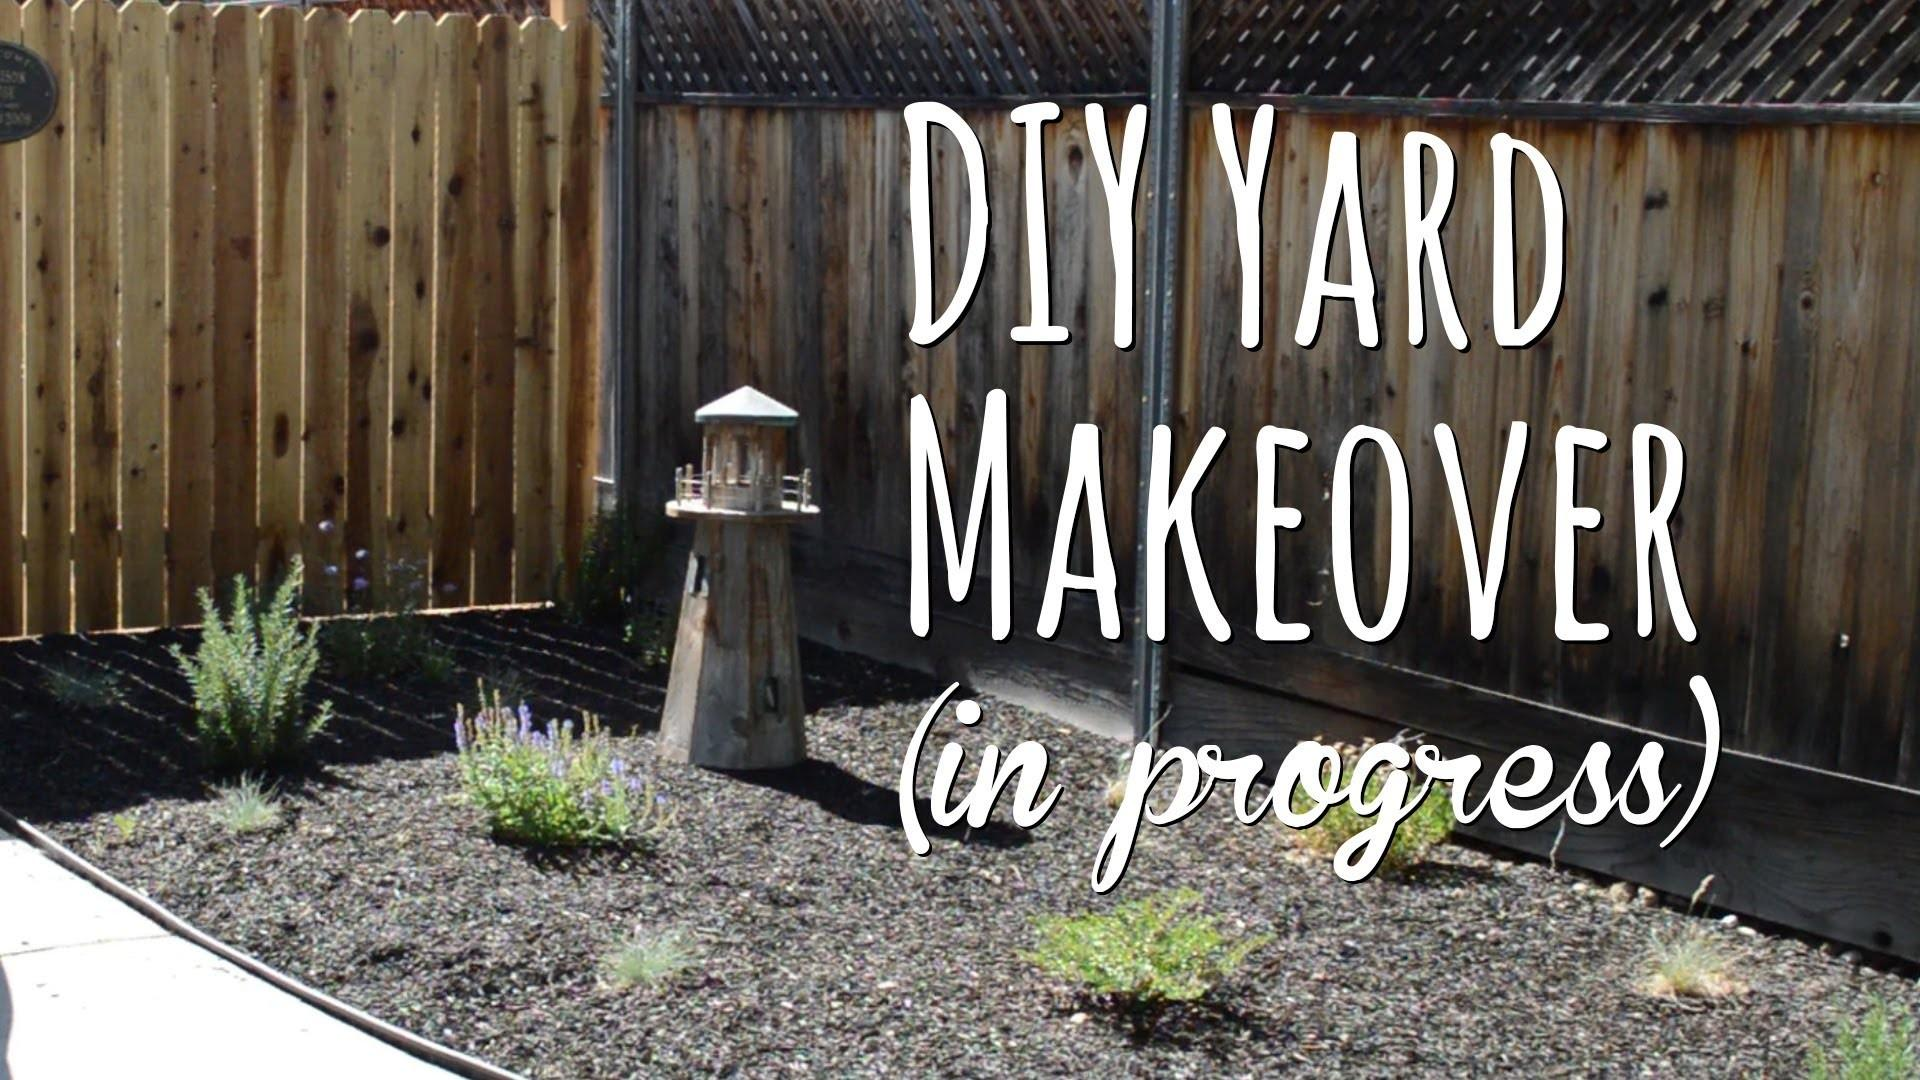 Diy Yard Makeover Front Before After